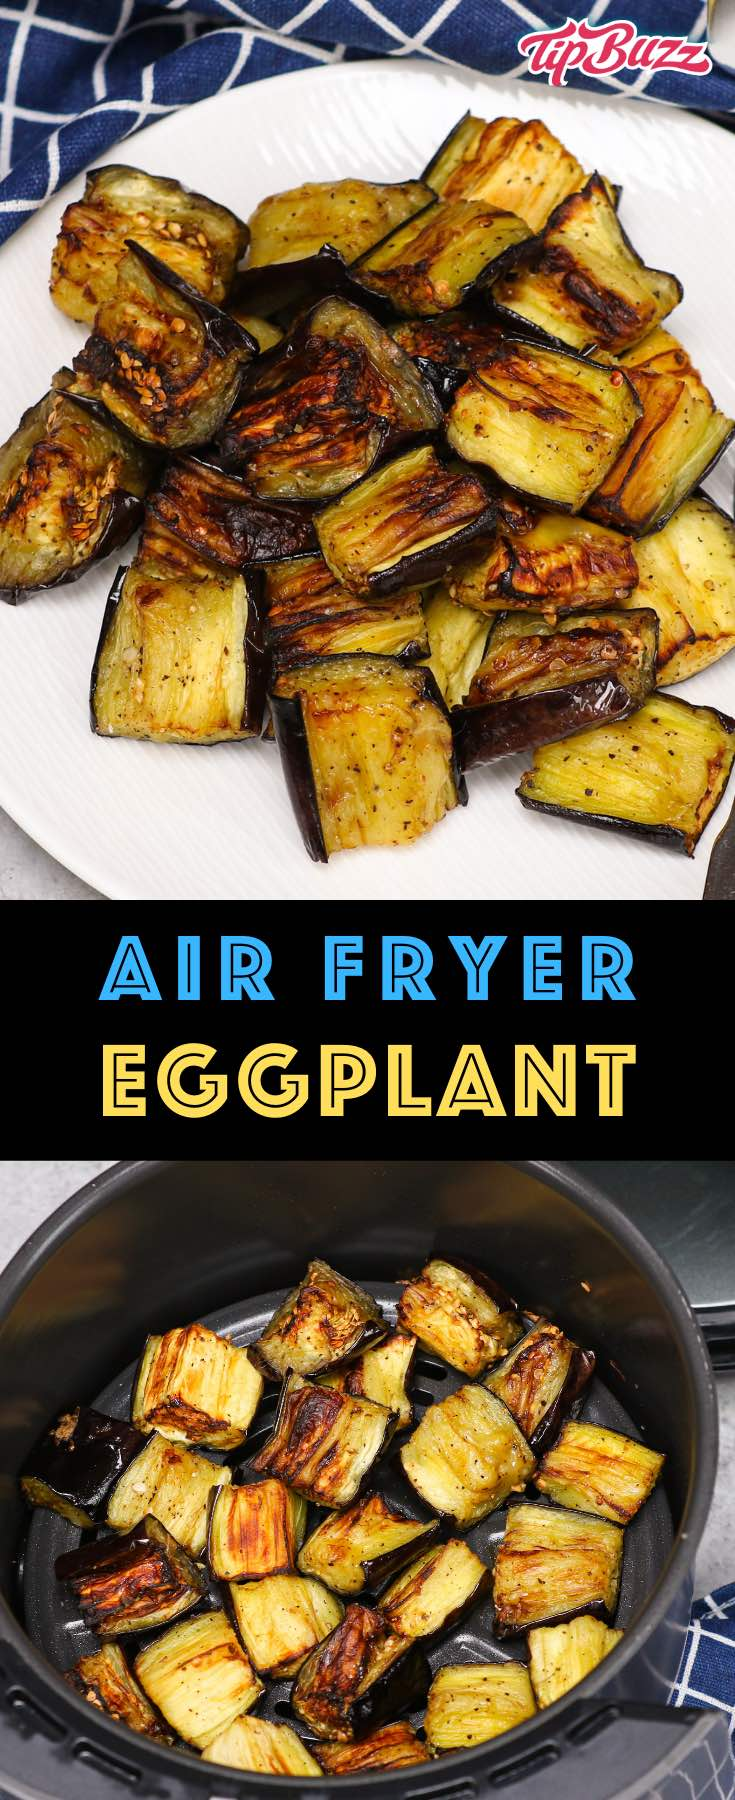 This Air Fryer Eggplant is a healthy and flavorful side dish that's ready in under 20 minutes! Keep reading to learn how to roast eggplant in an air fryer quickly and easily. #AirFryerEggplant